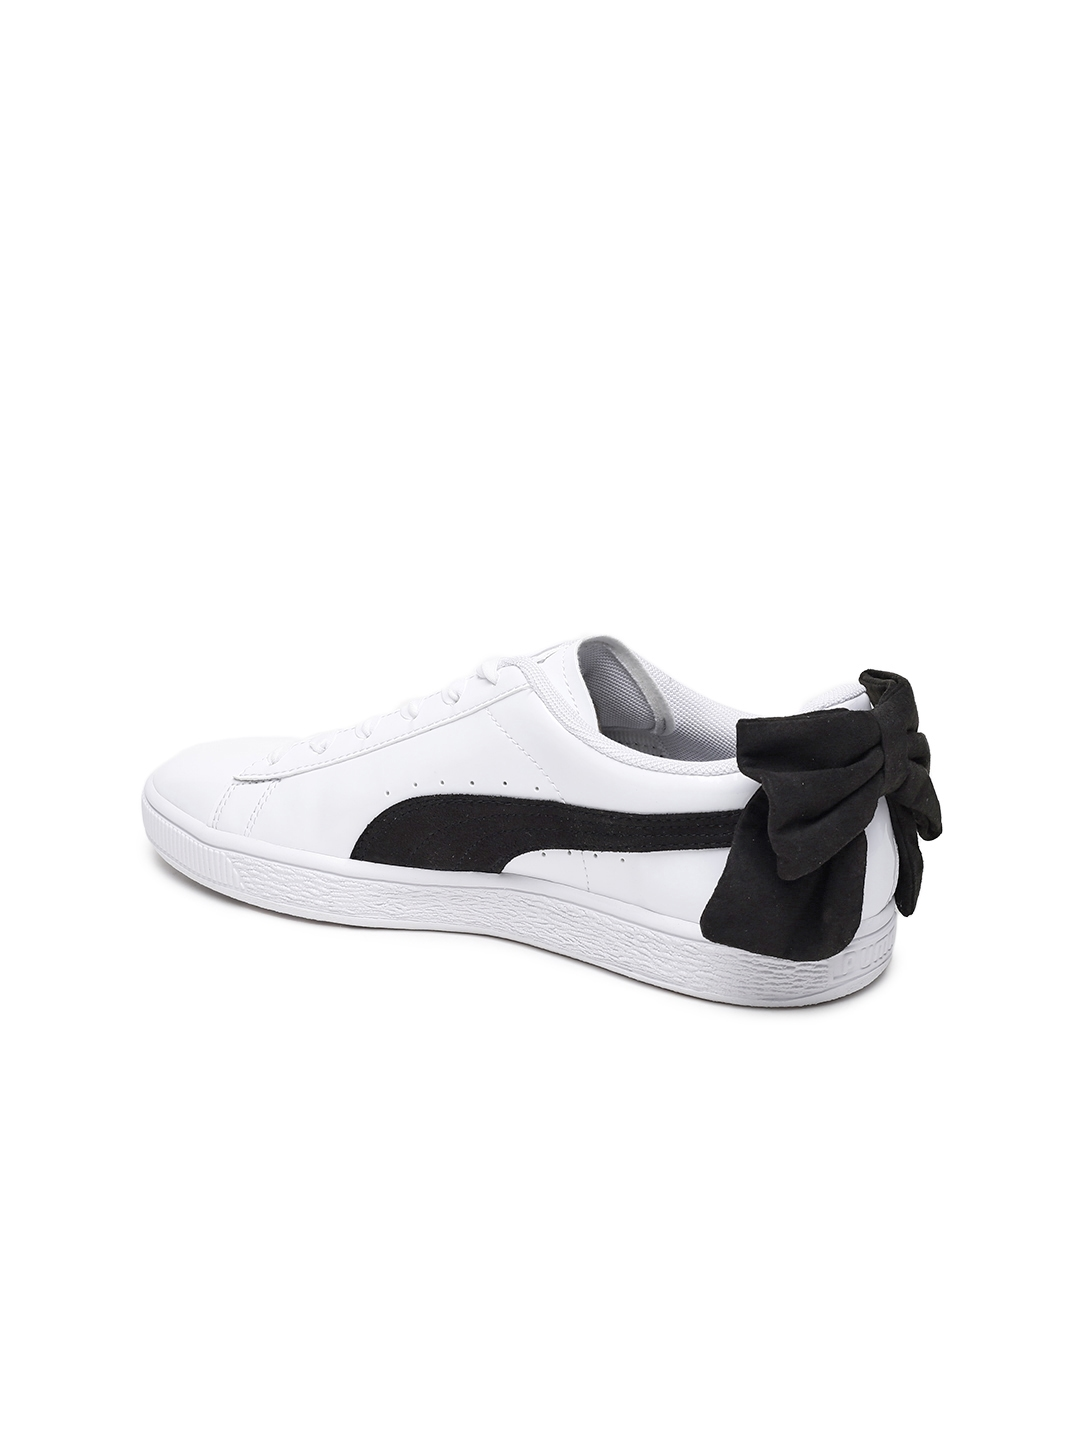 5aaaabfce2b Buy Puma Women White Basket Bow SB Sneakers - Casual Shoes for Women ...